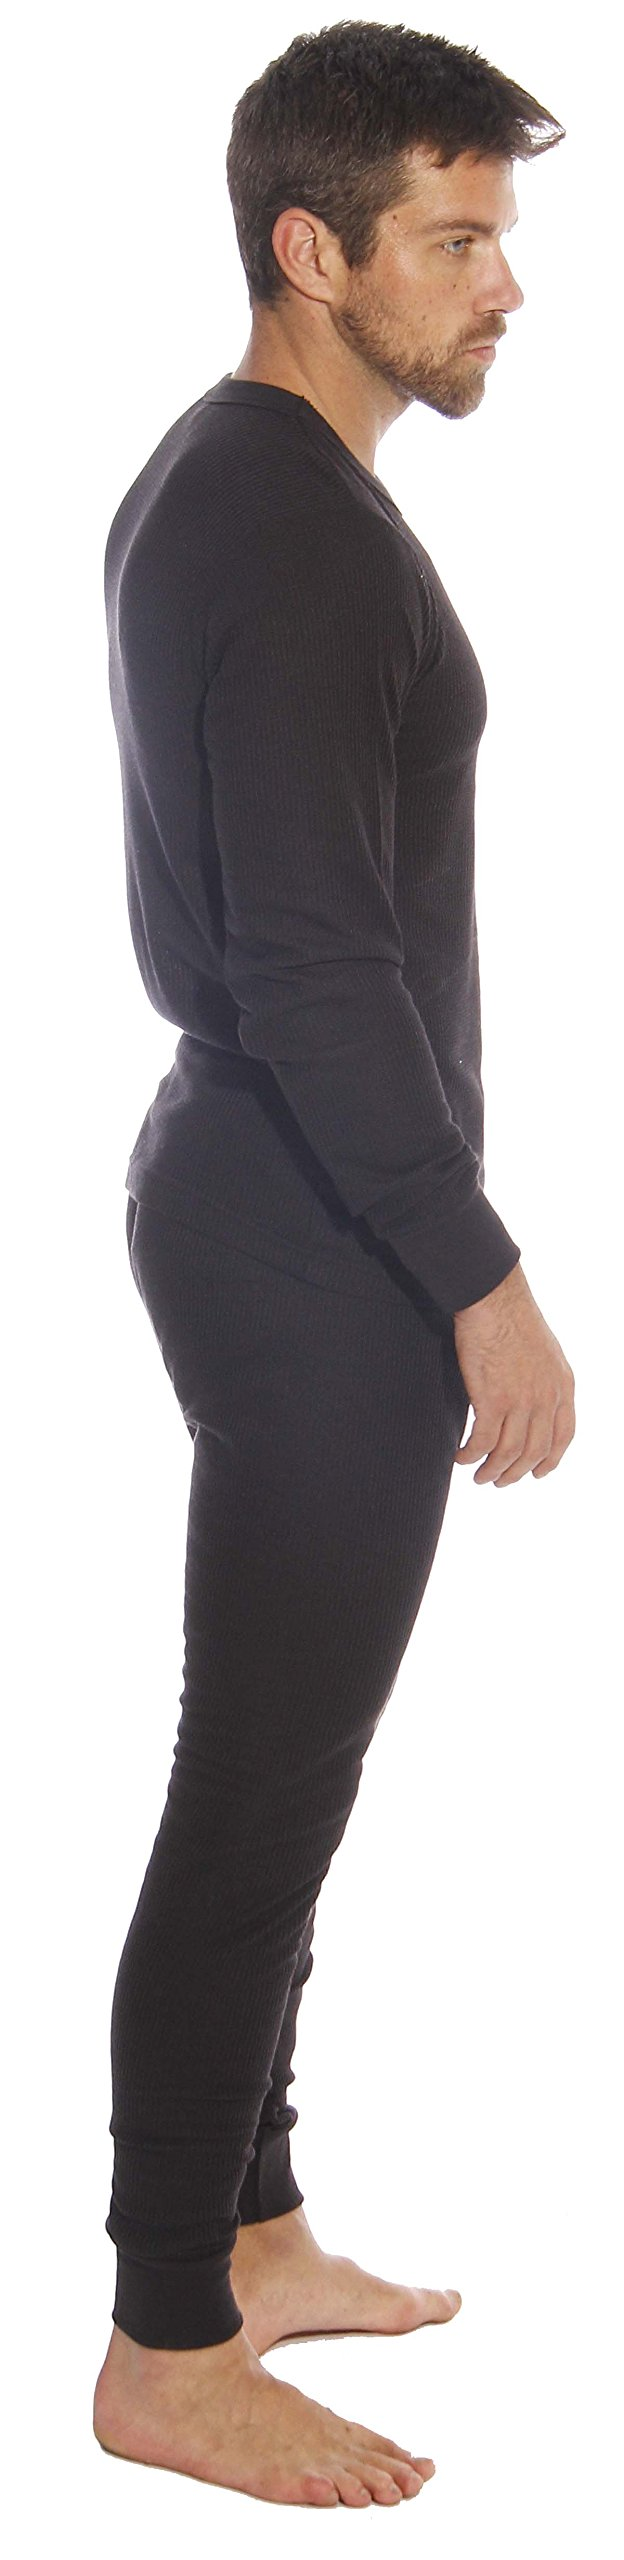 At The Buzzer Thermal Underwear Set For Men 95962-Black-XL by At The Buzzer (Image #2)